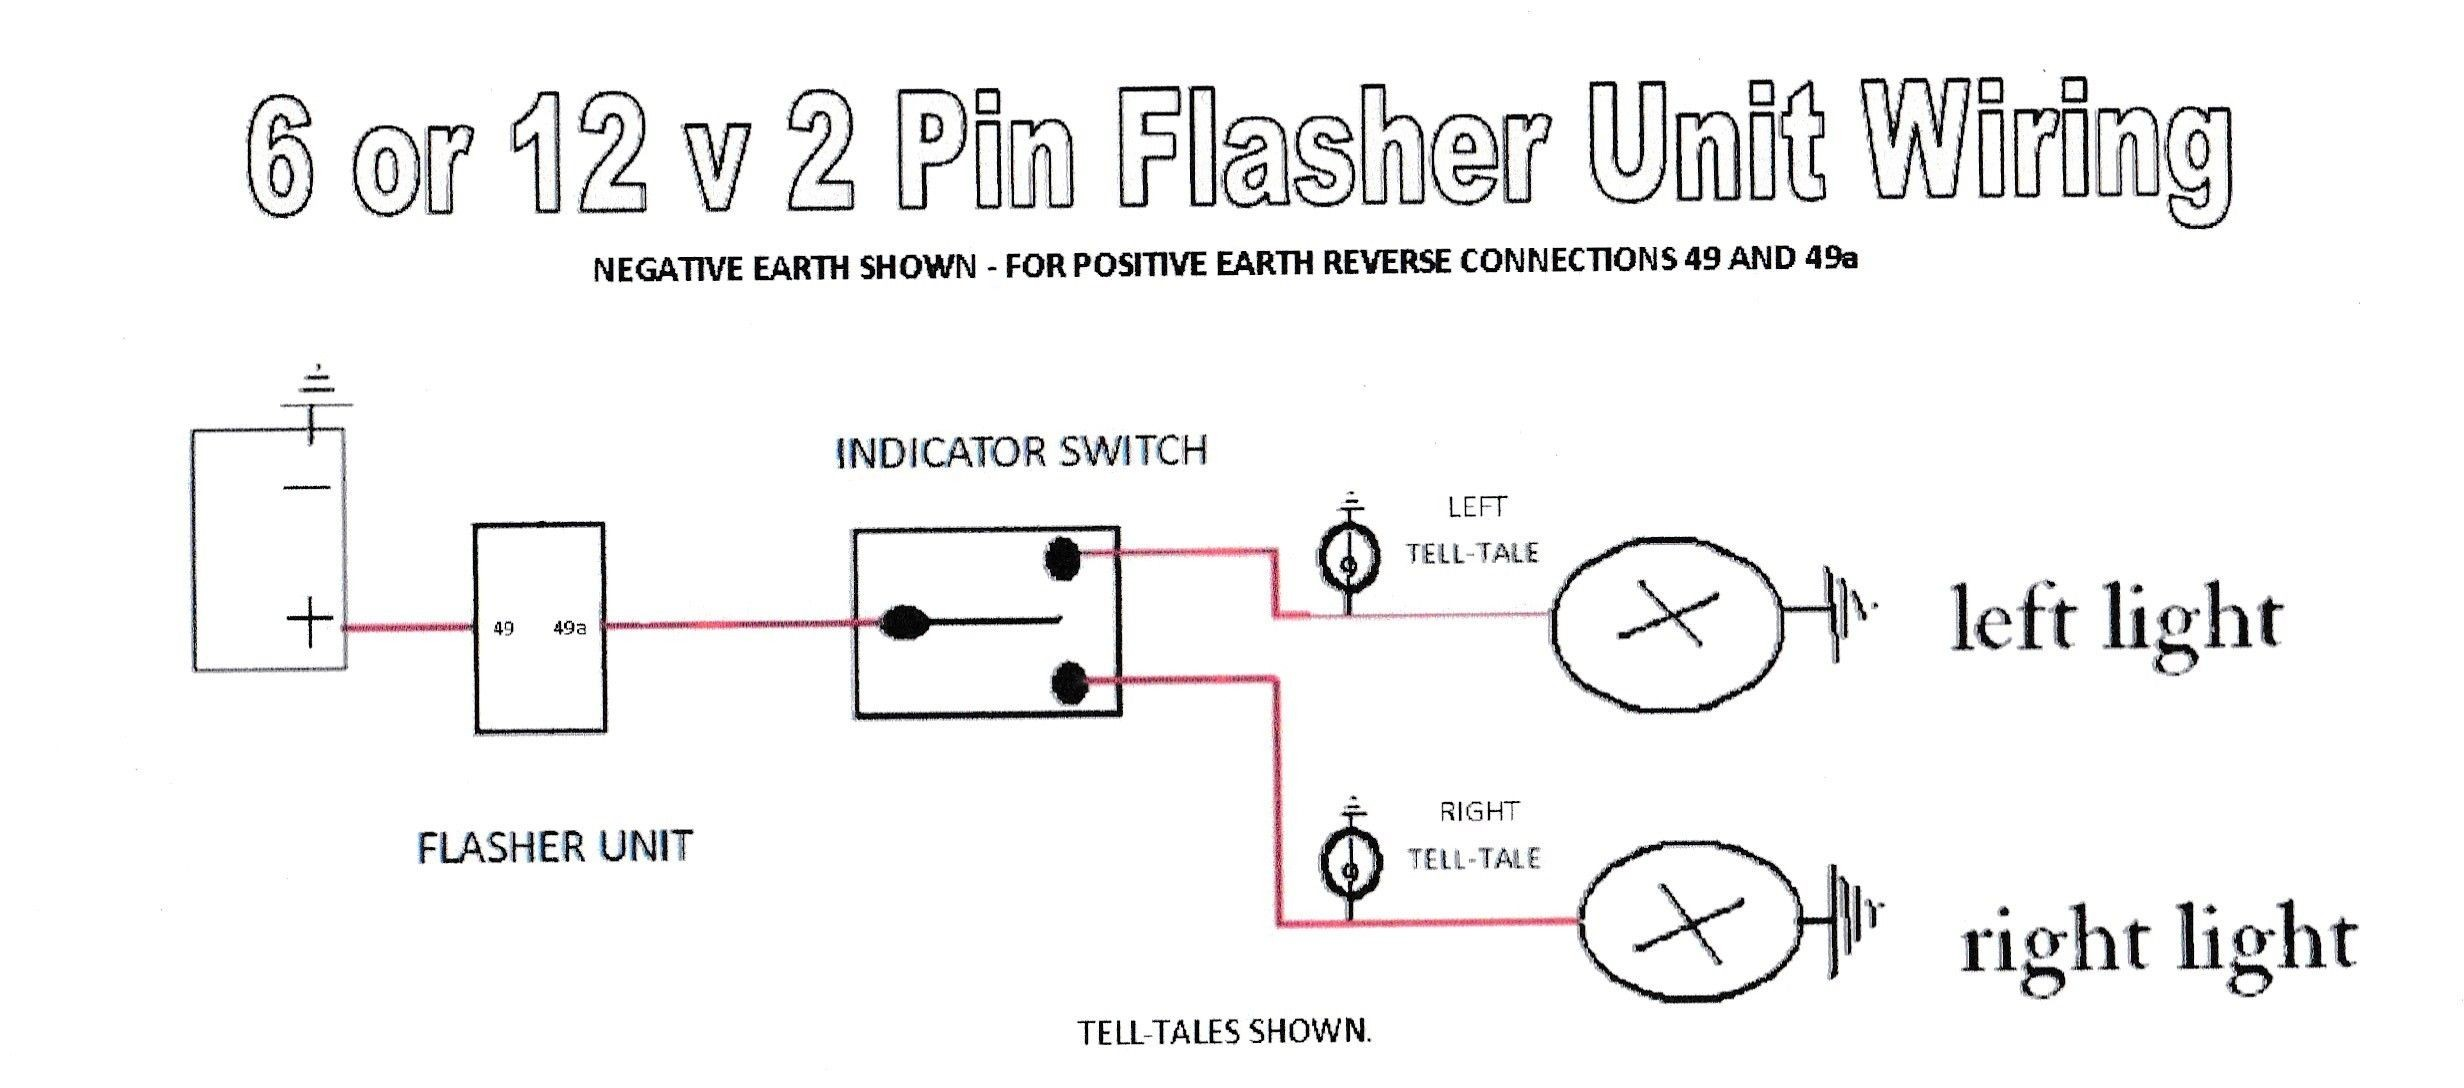 How To Wire Up 3prong Flasher